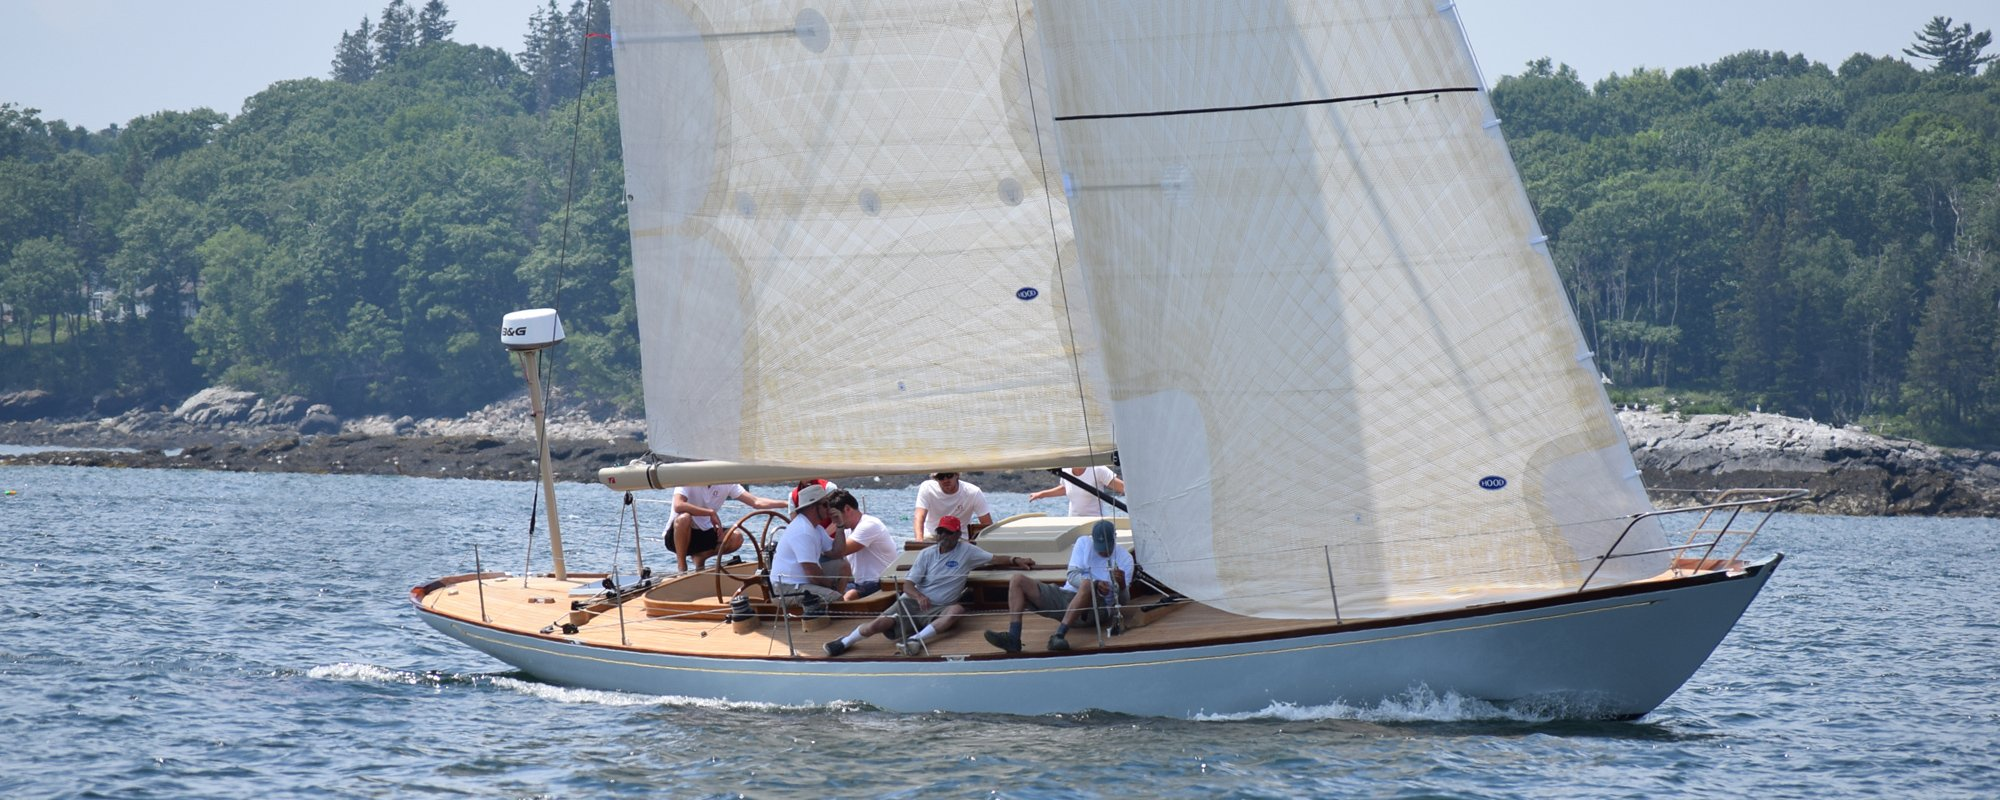 Group of friends enjoying time on a sailing boat